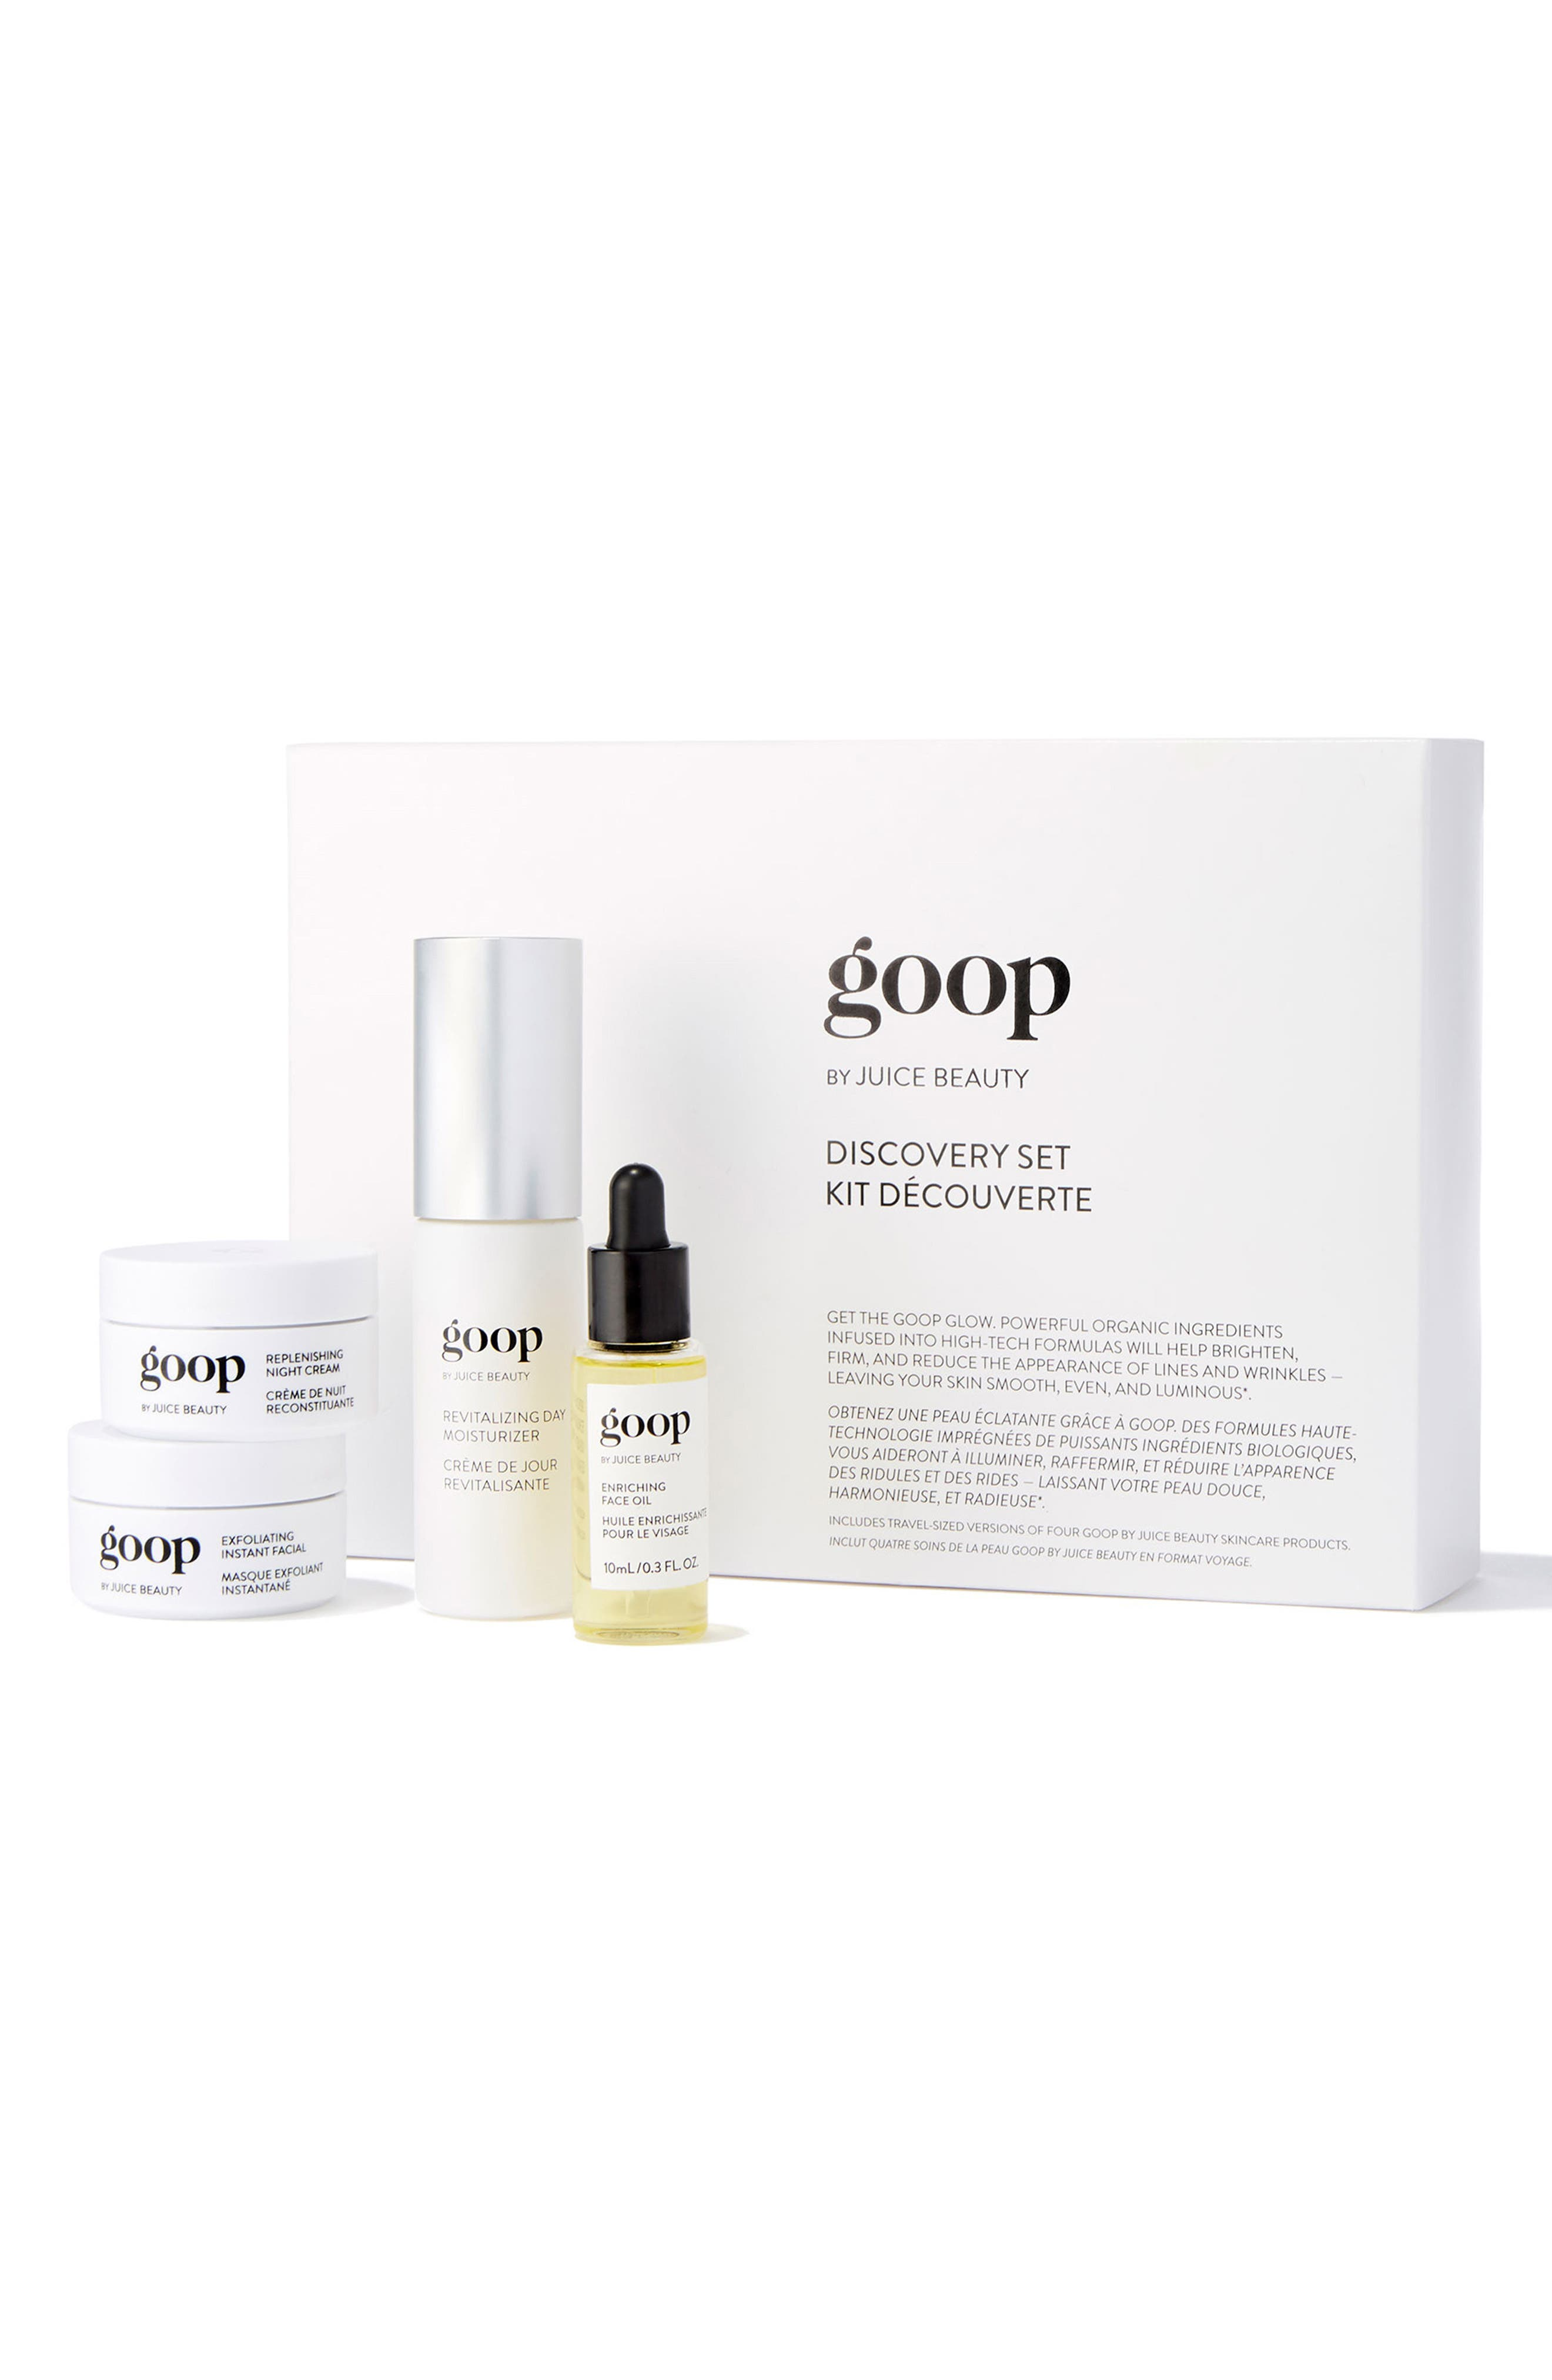 GOOP,                             by Juice Beauty Skin Care Discovery Set,                             Main thumbnail 1, color,                             000